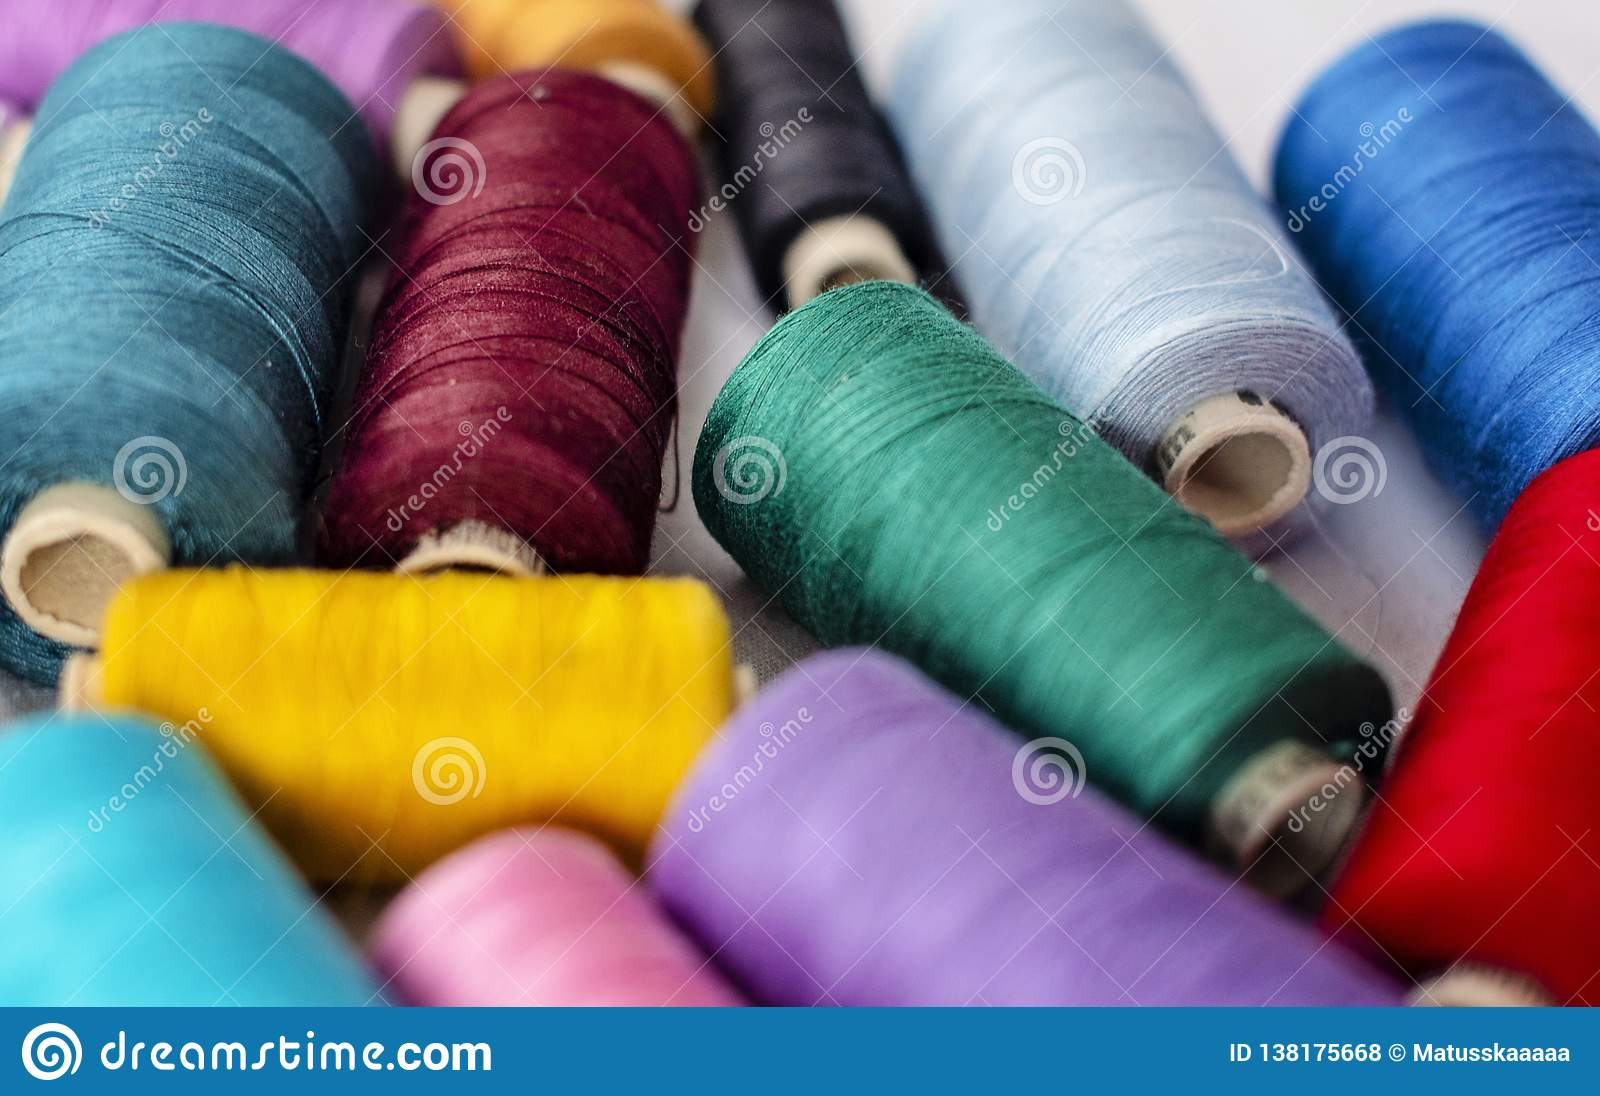 Background shot of bright thread spools on white fabric - image